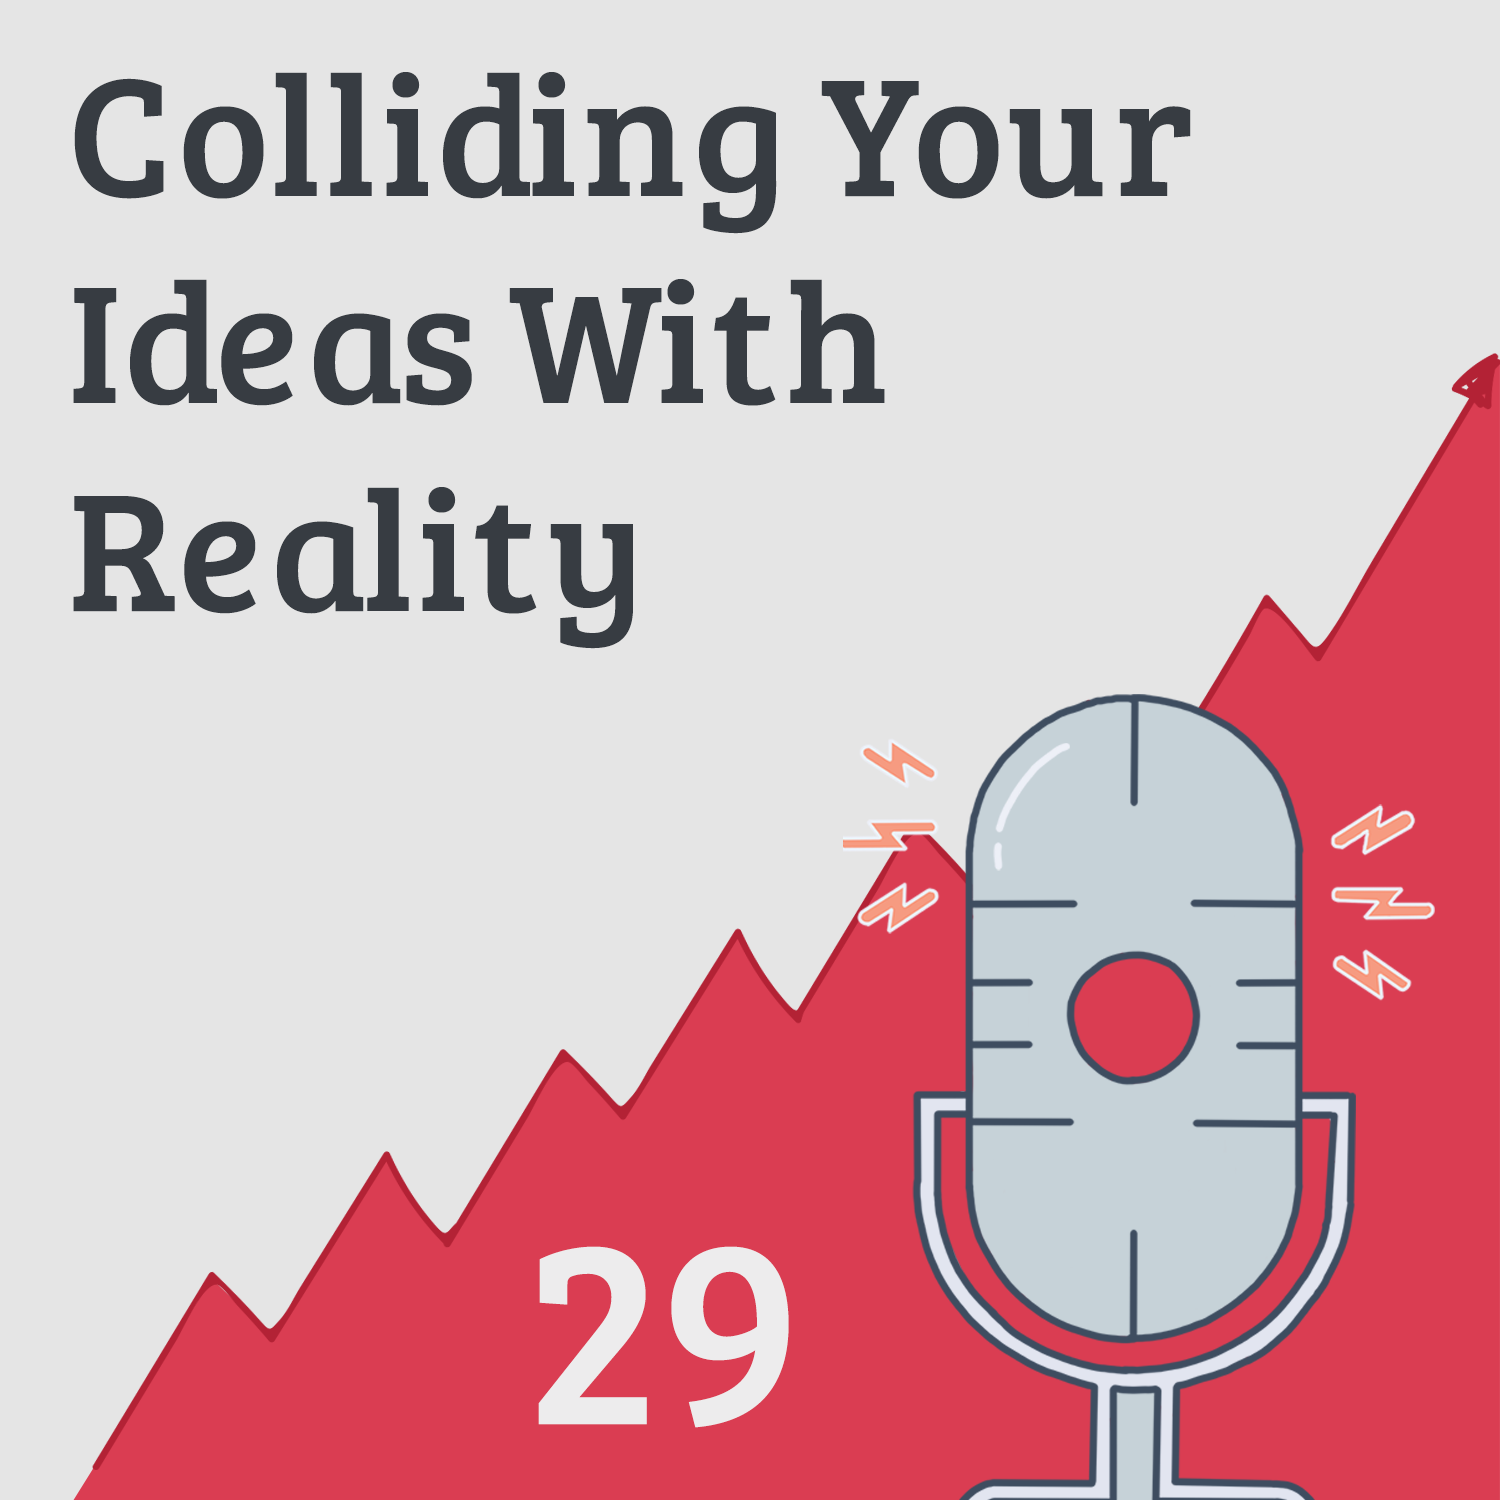 Collide Your Ideas With Reality